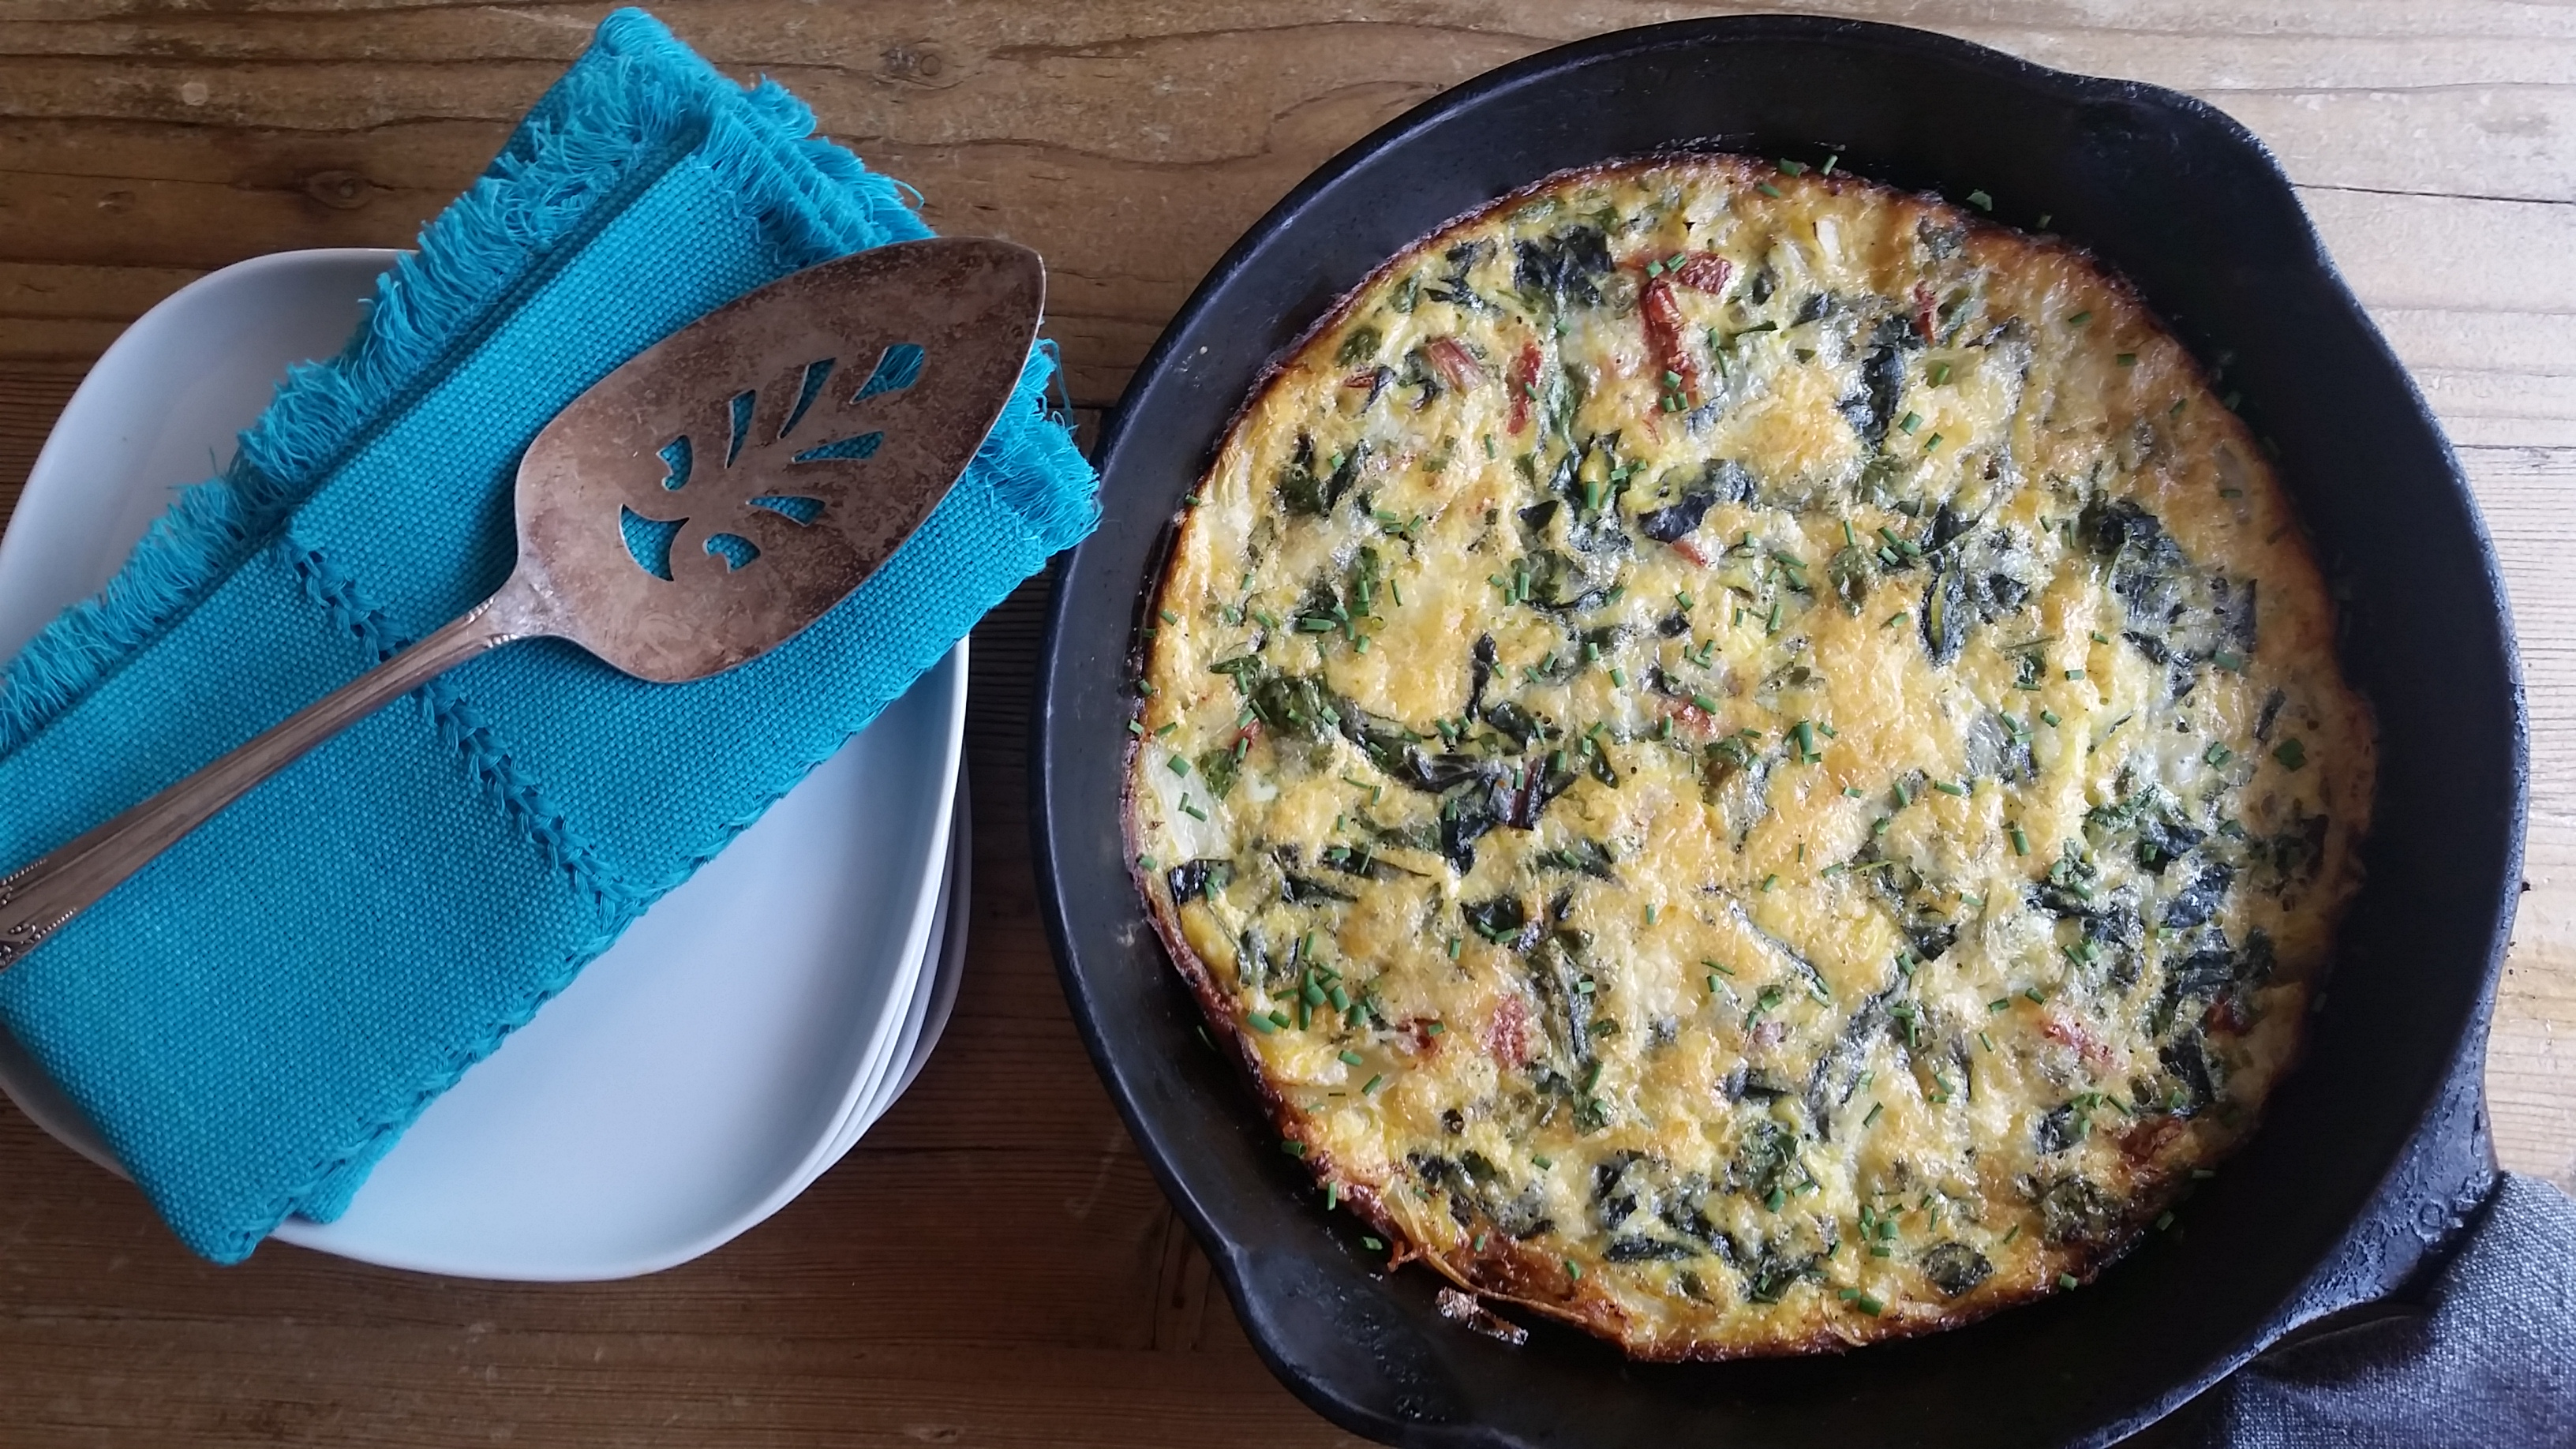 Green Power Frittata